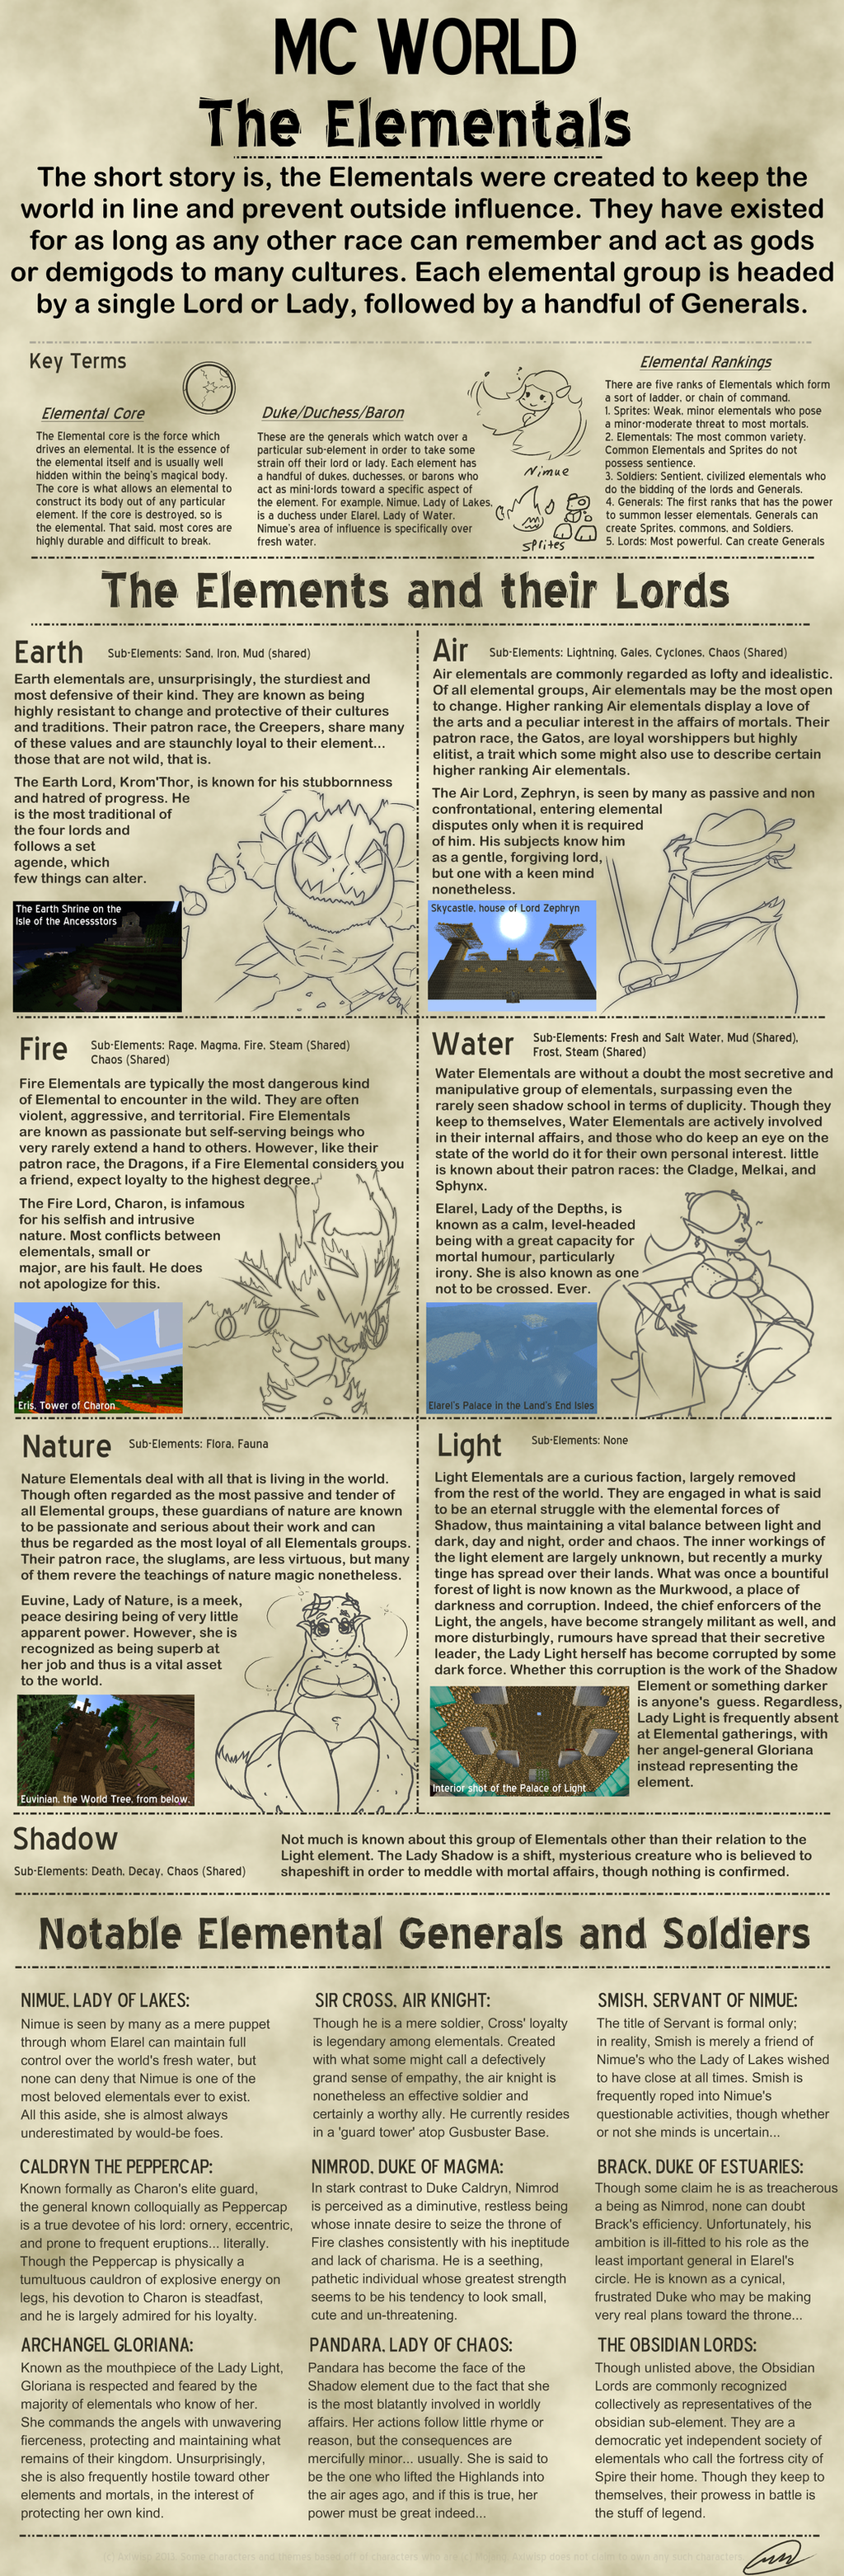 MCWorld Lore: The Elementals by Axlwisp